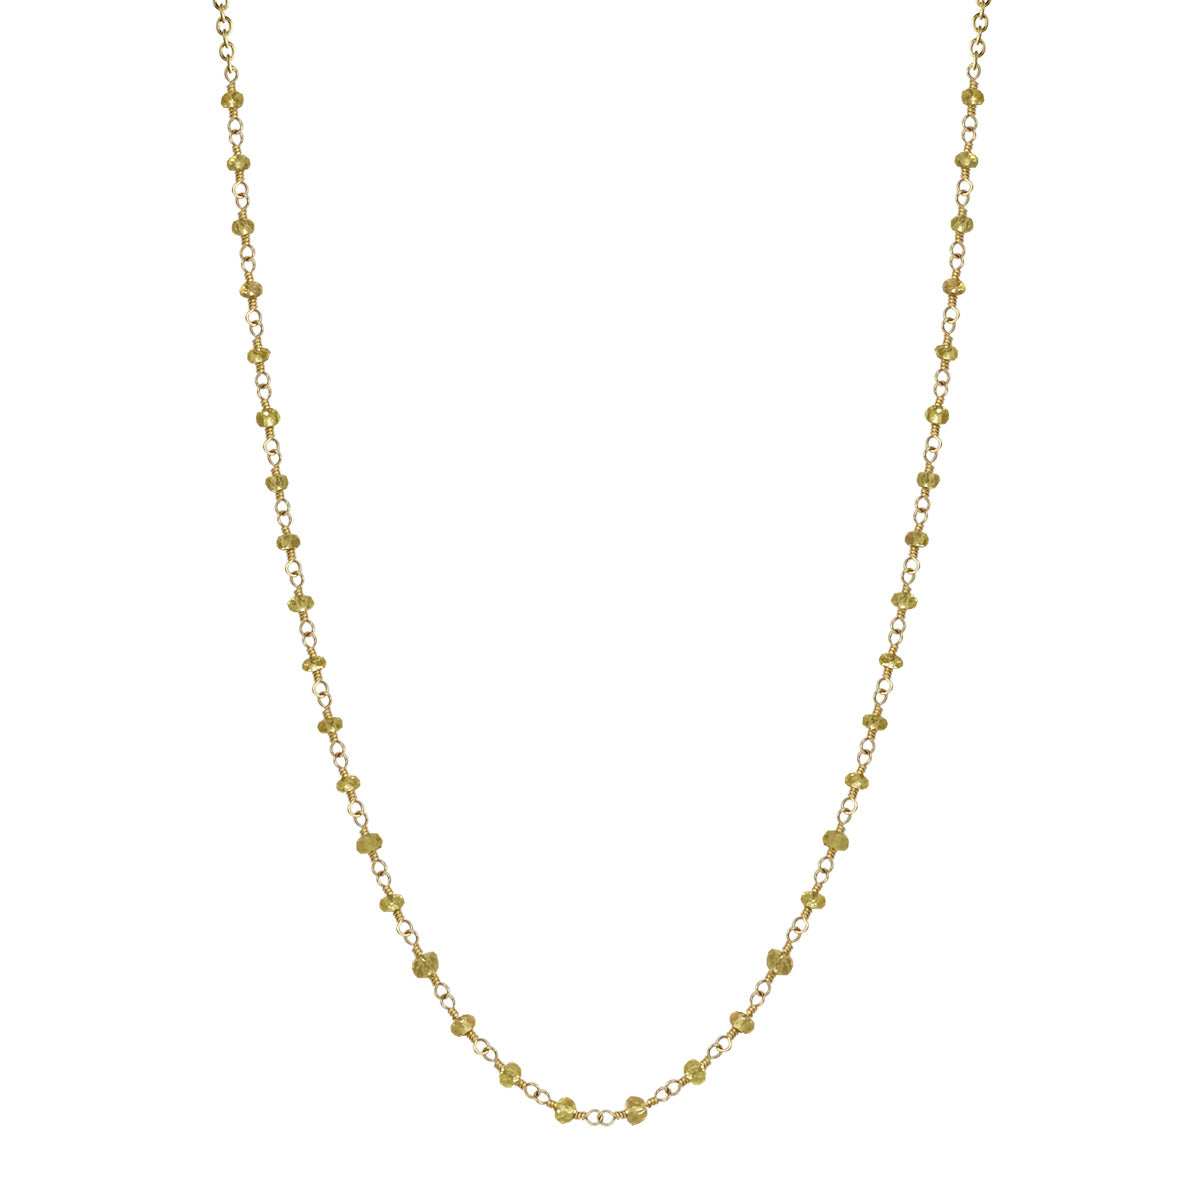 18K Gold Yellow Sapphire Beads on Chain